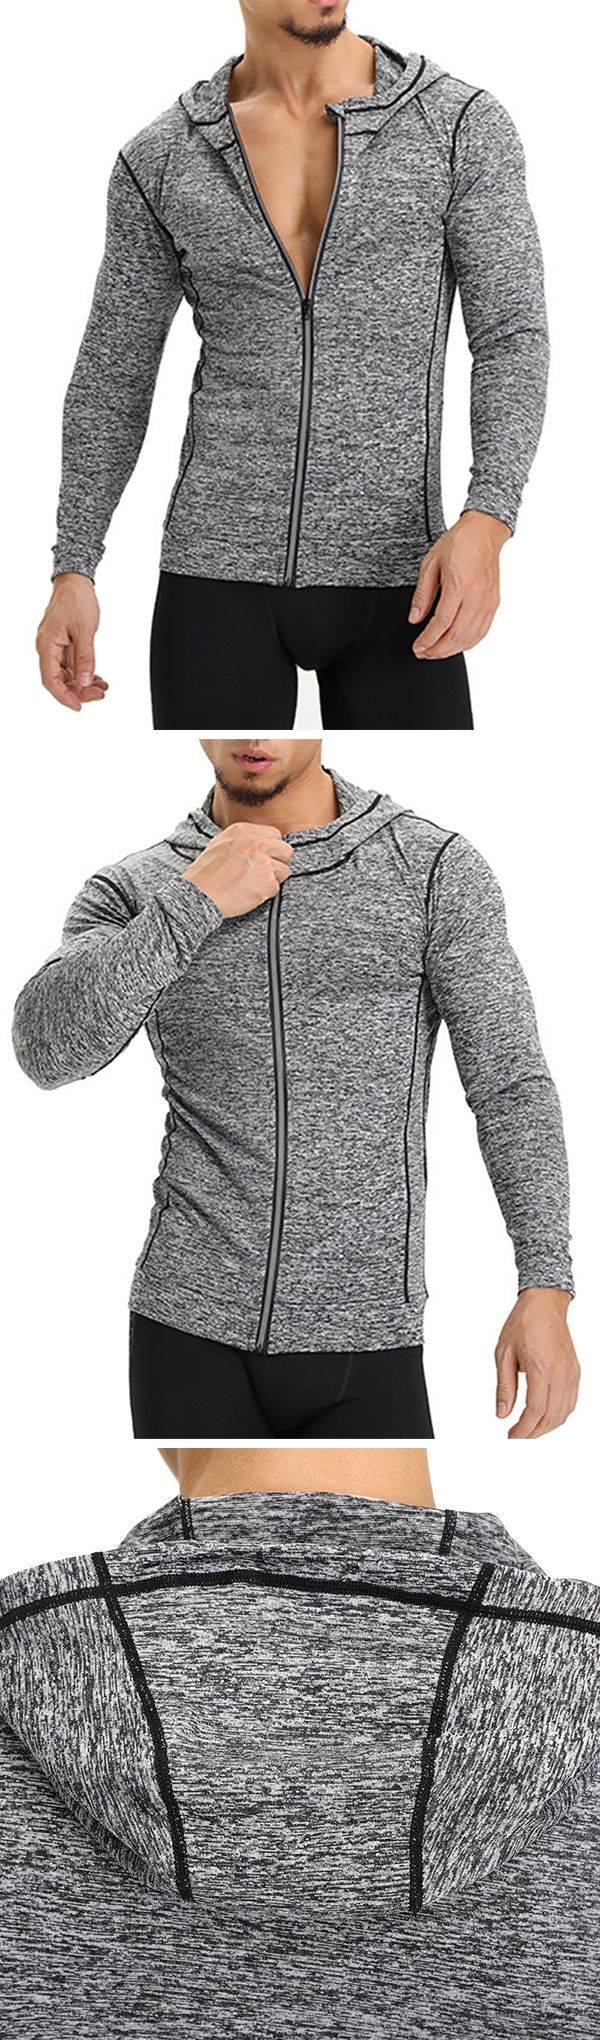 Long Sleeve Fitness&Jogging Casual Hooded Tops #men #fitness #gym